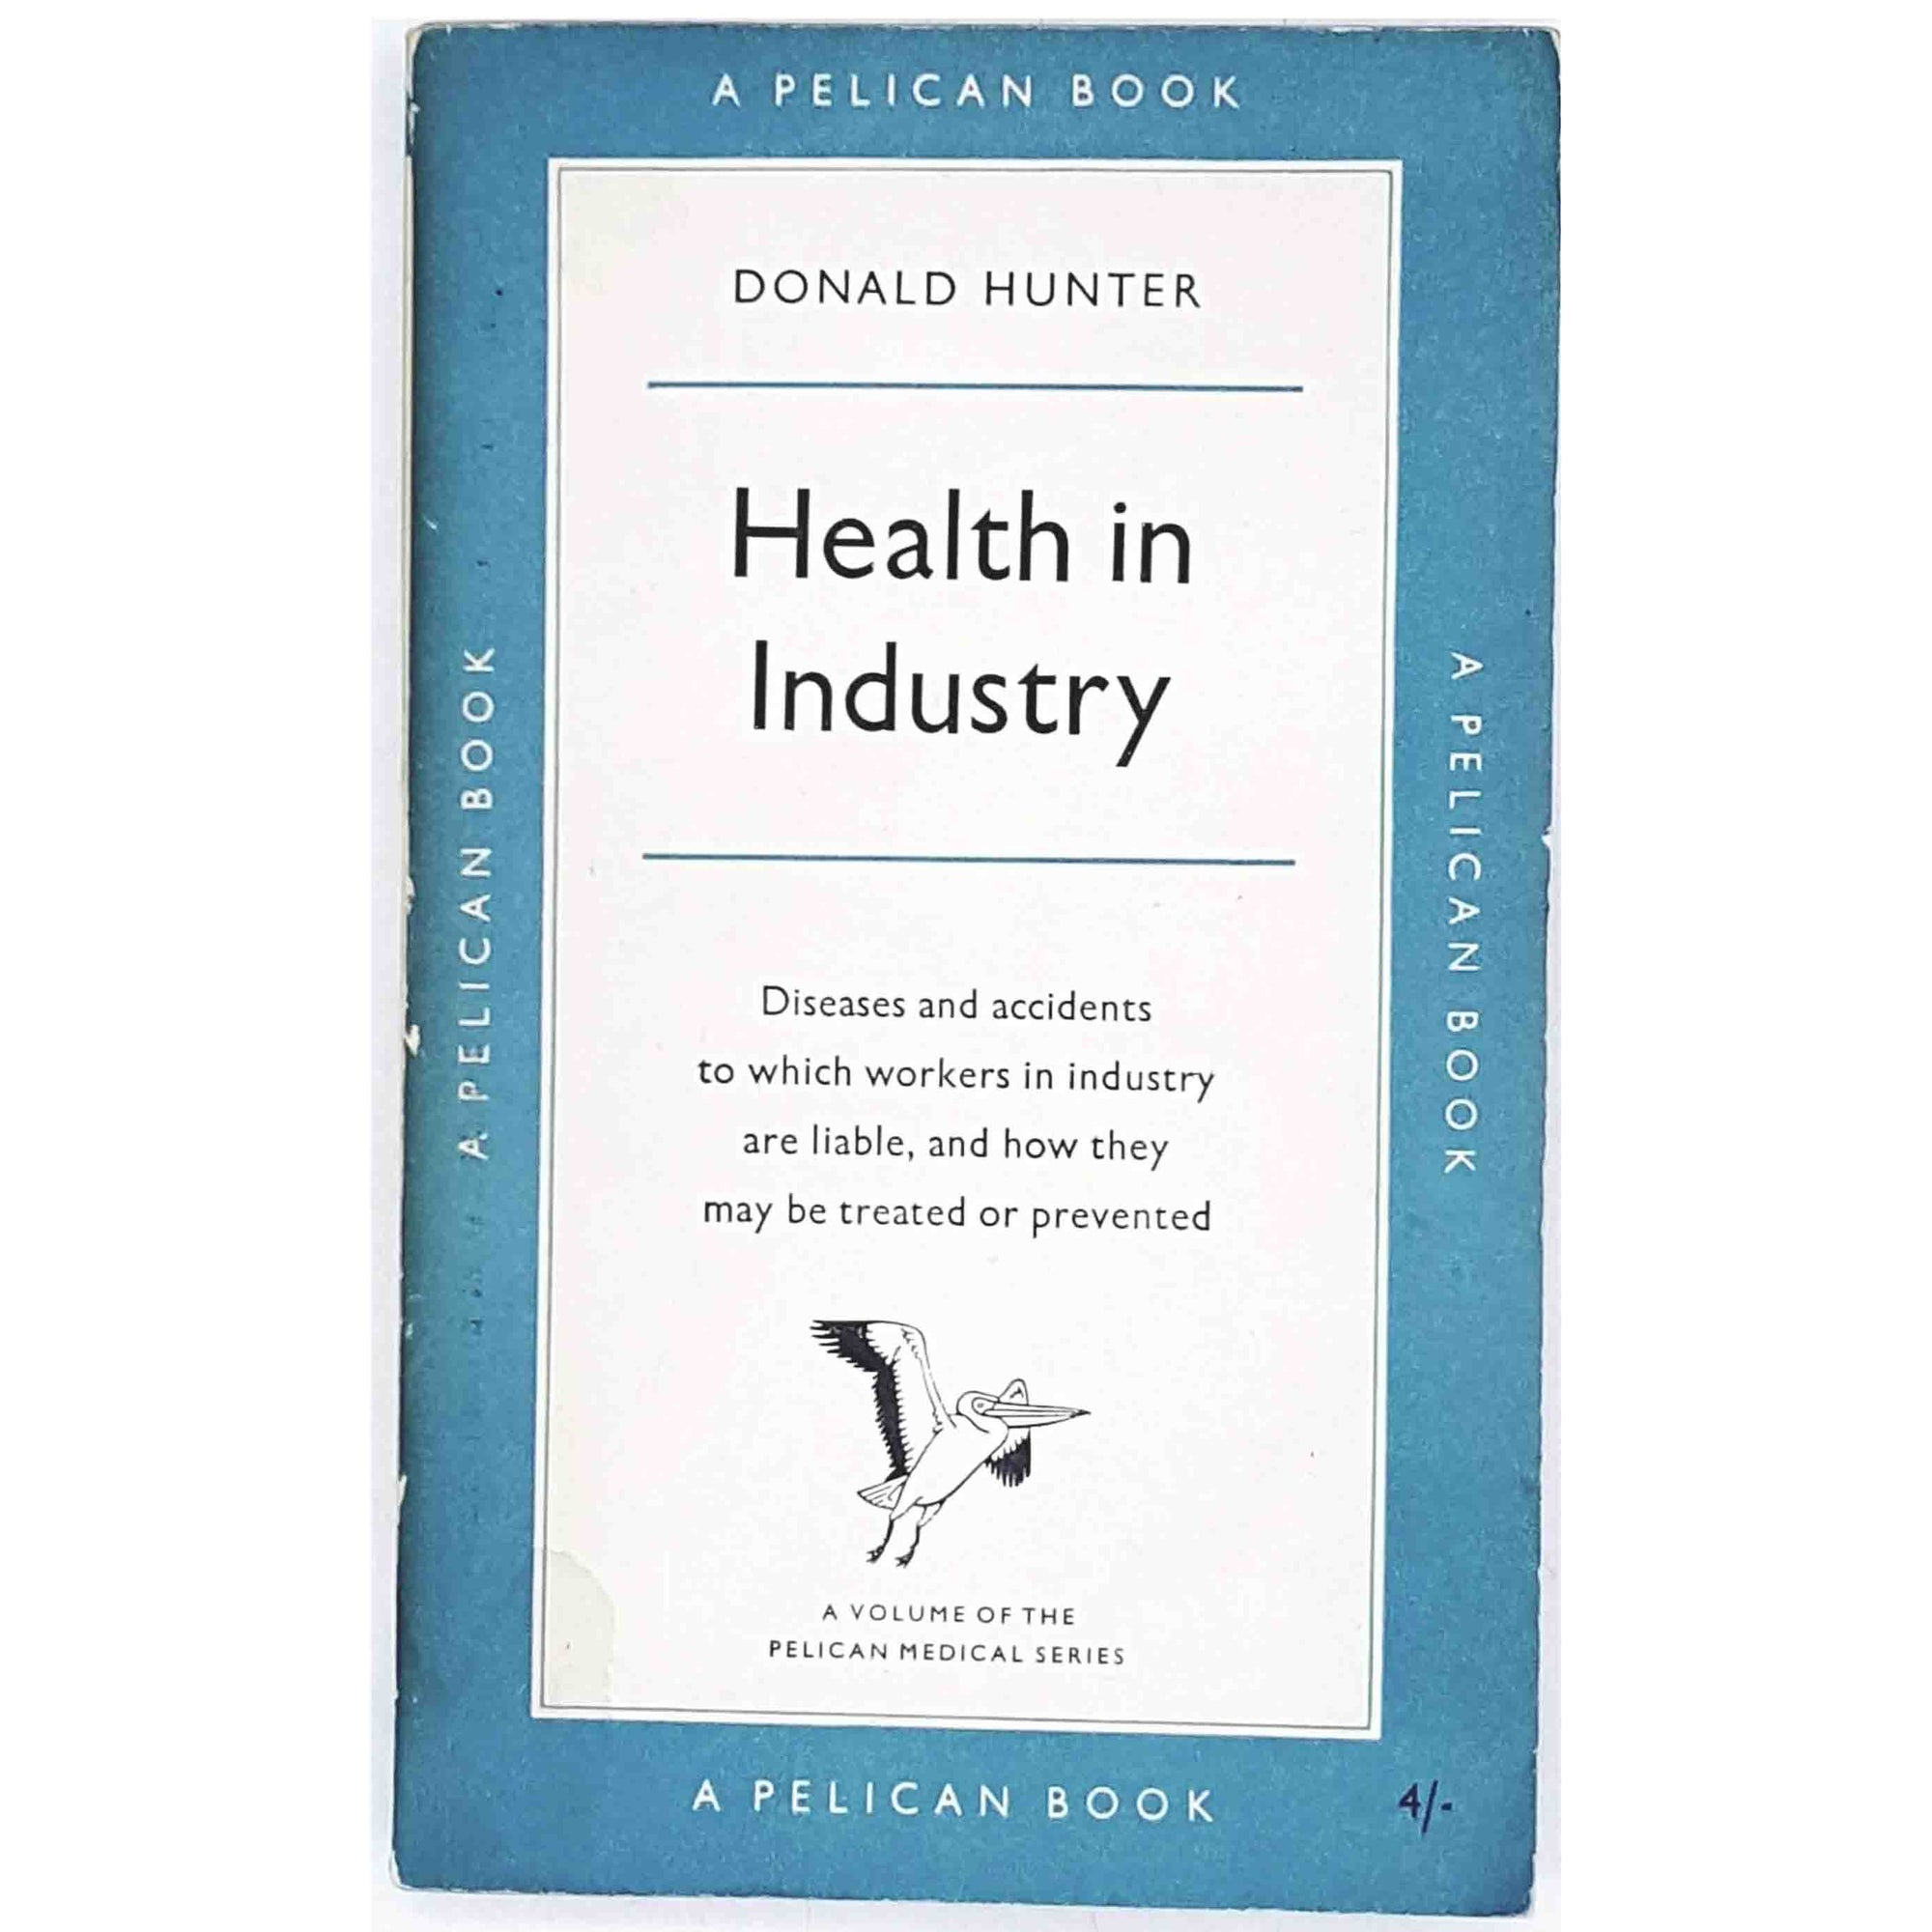 Vintage Pelican: Health in Industry by Donald Hunter 1959